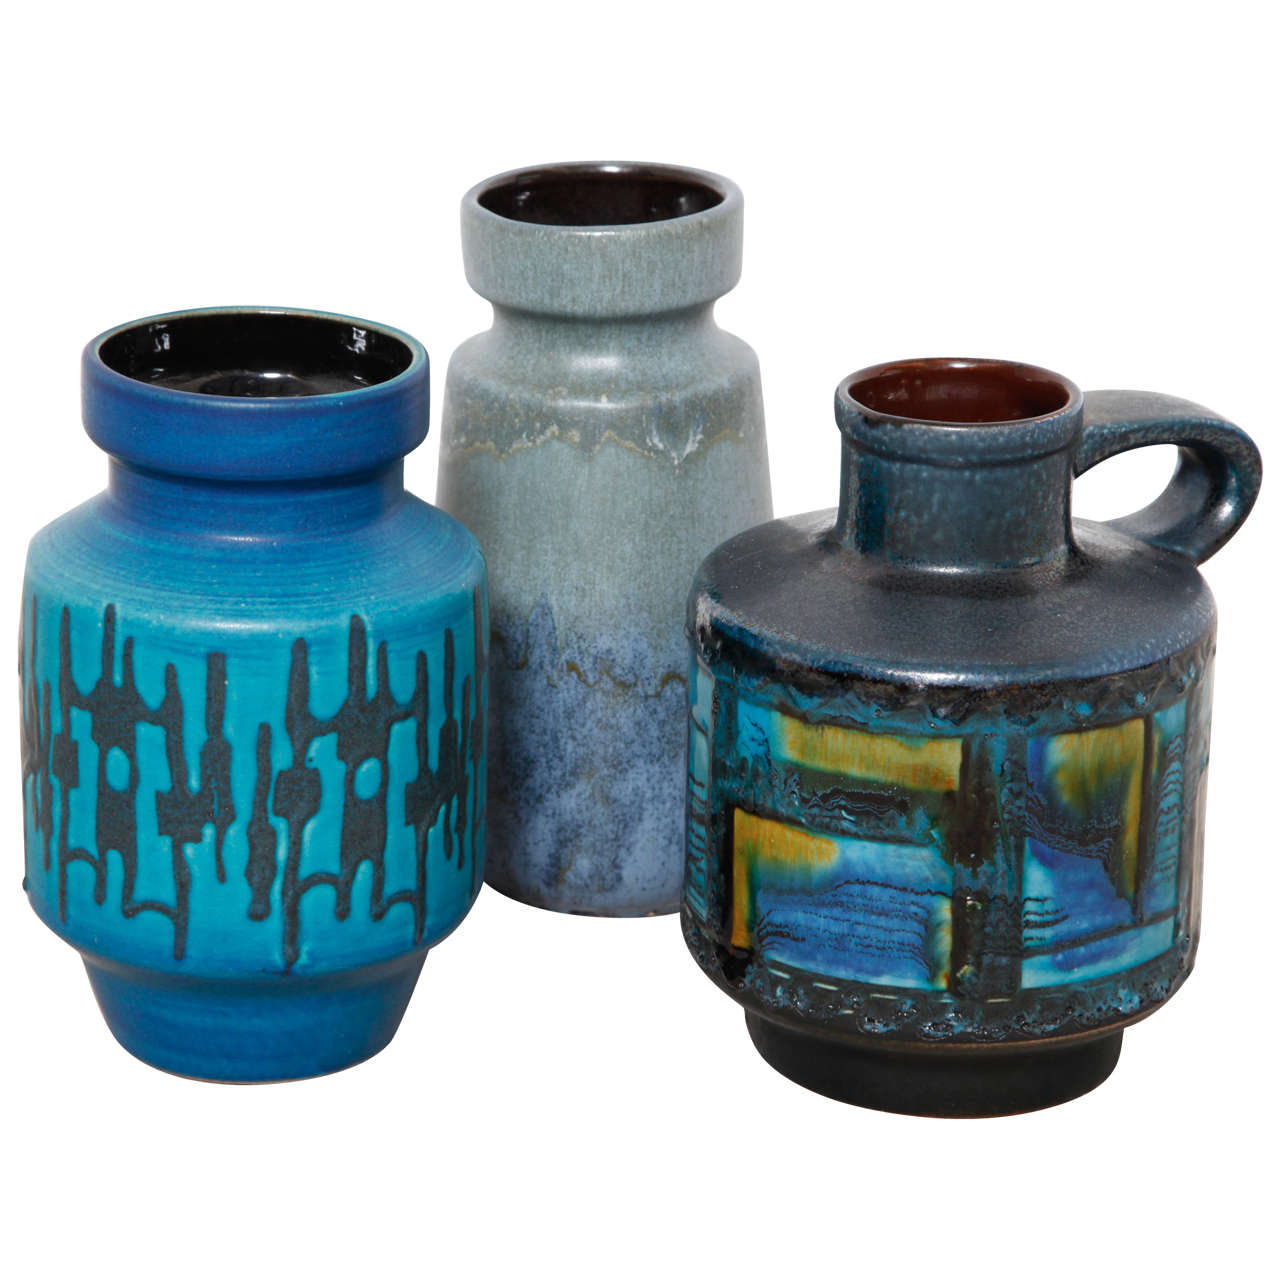 Group of Iconic Ceramic West-Germany Vases